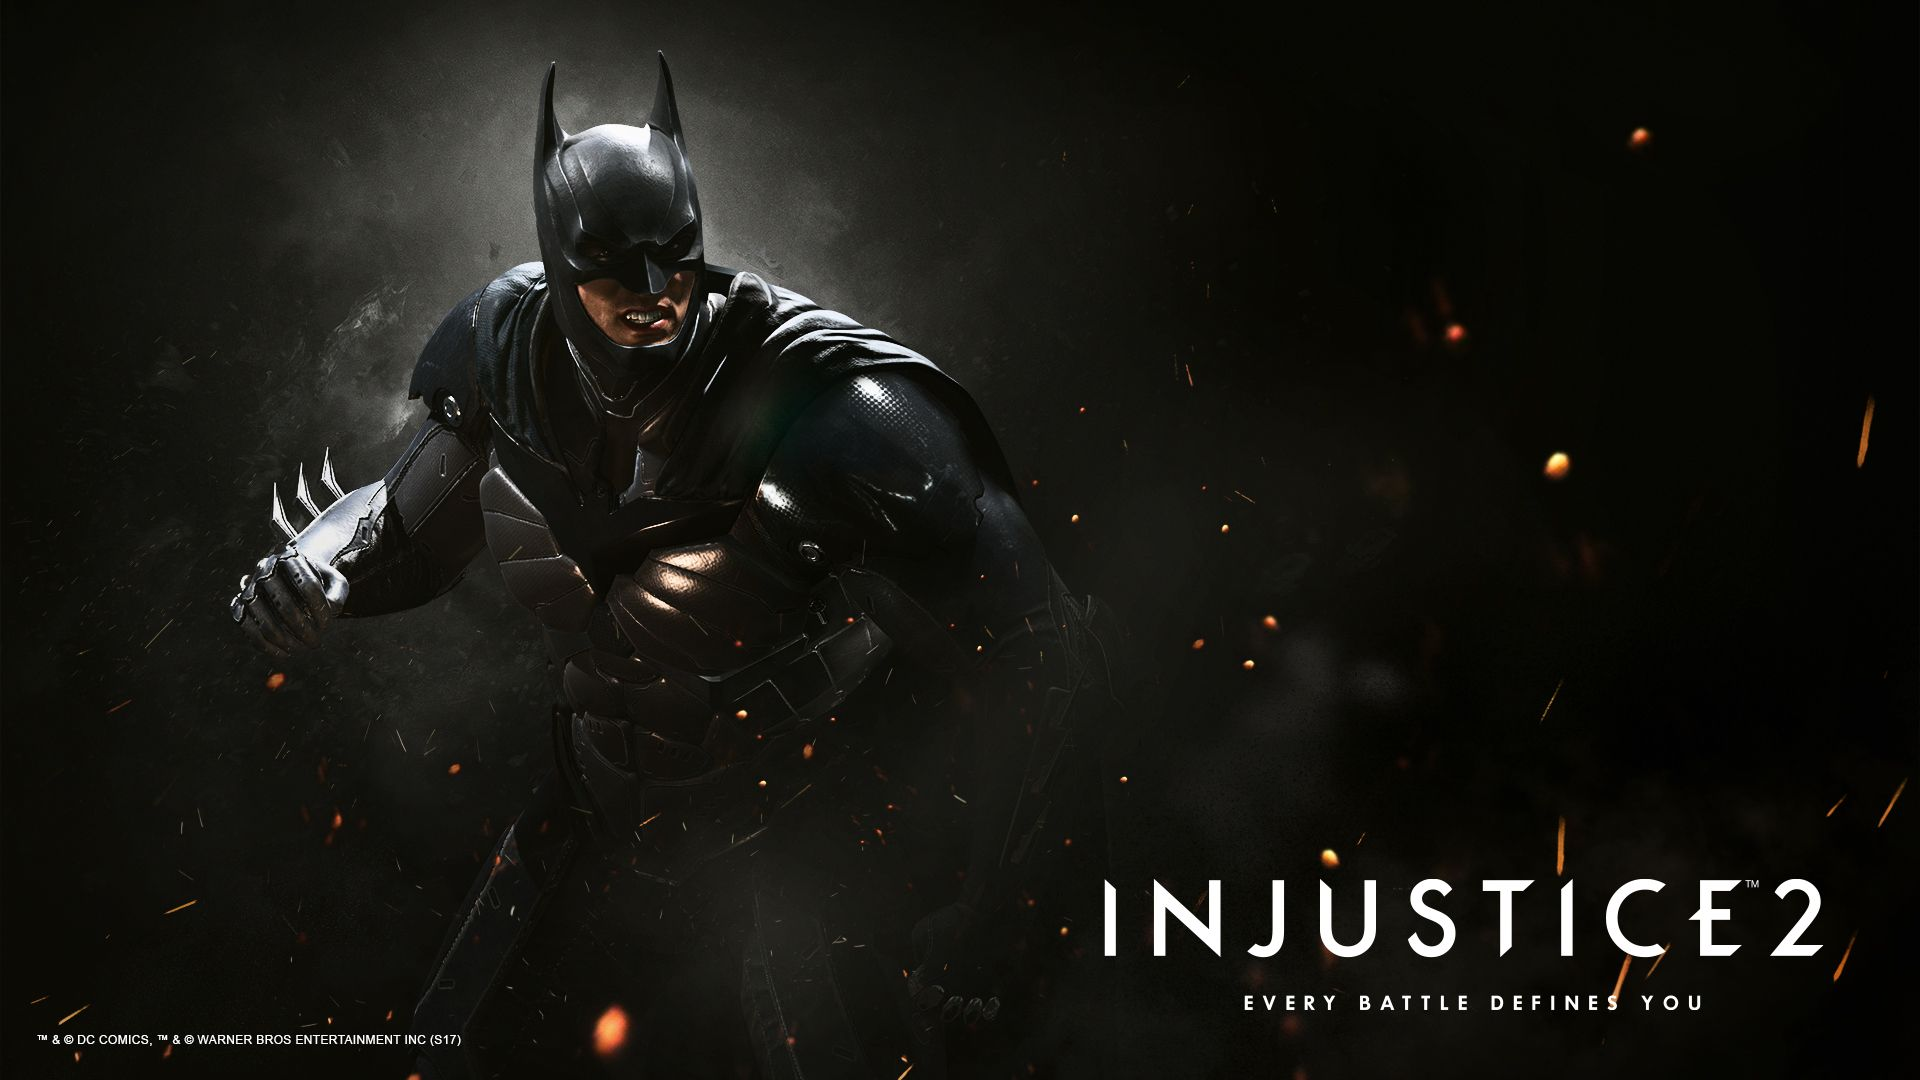 Batman Injustice 2 Wallpaper 0001